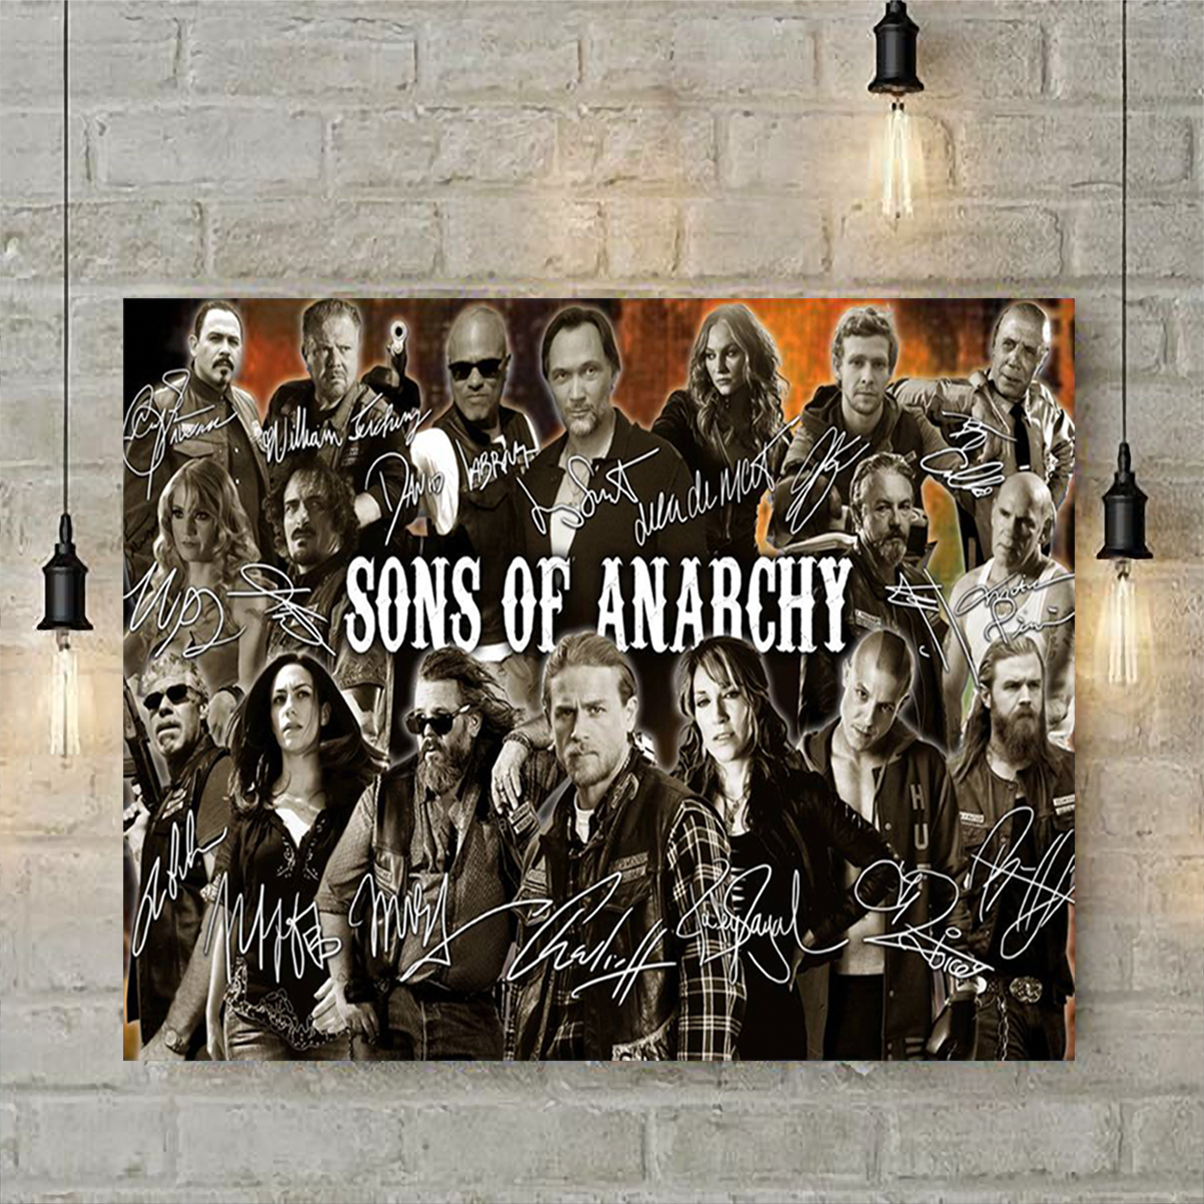 Sons of anarchy signature poster A2